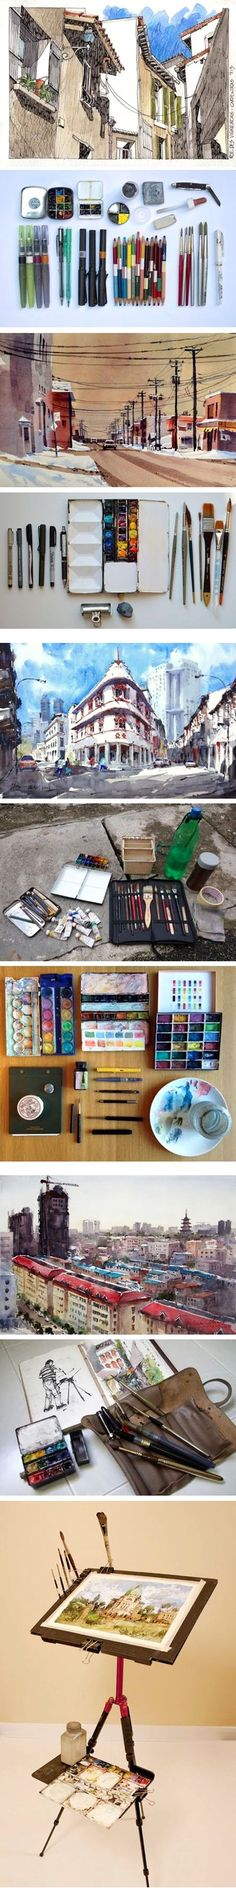 Parka Blogs' art tools and gears #watercolor #sketch http://linesandcolors.com/2014/05/09/parka-blogs-art-tools-and-gears/